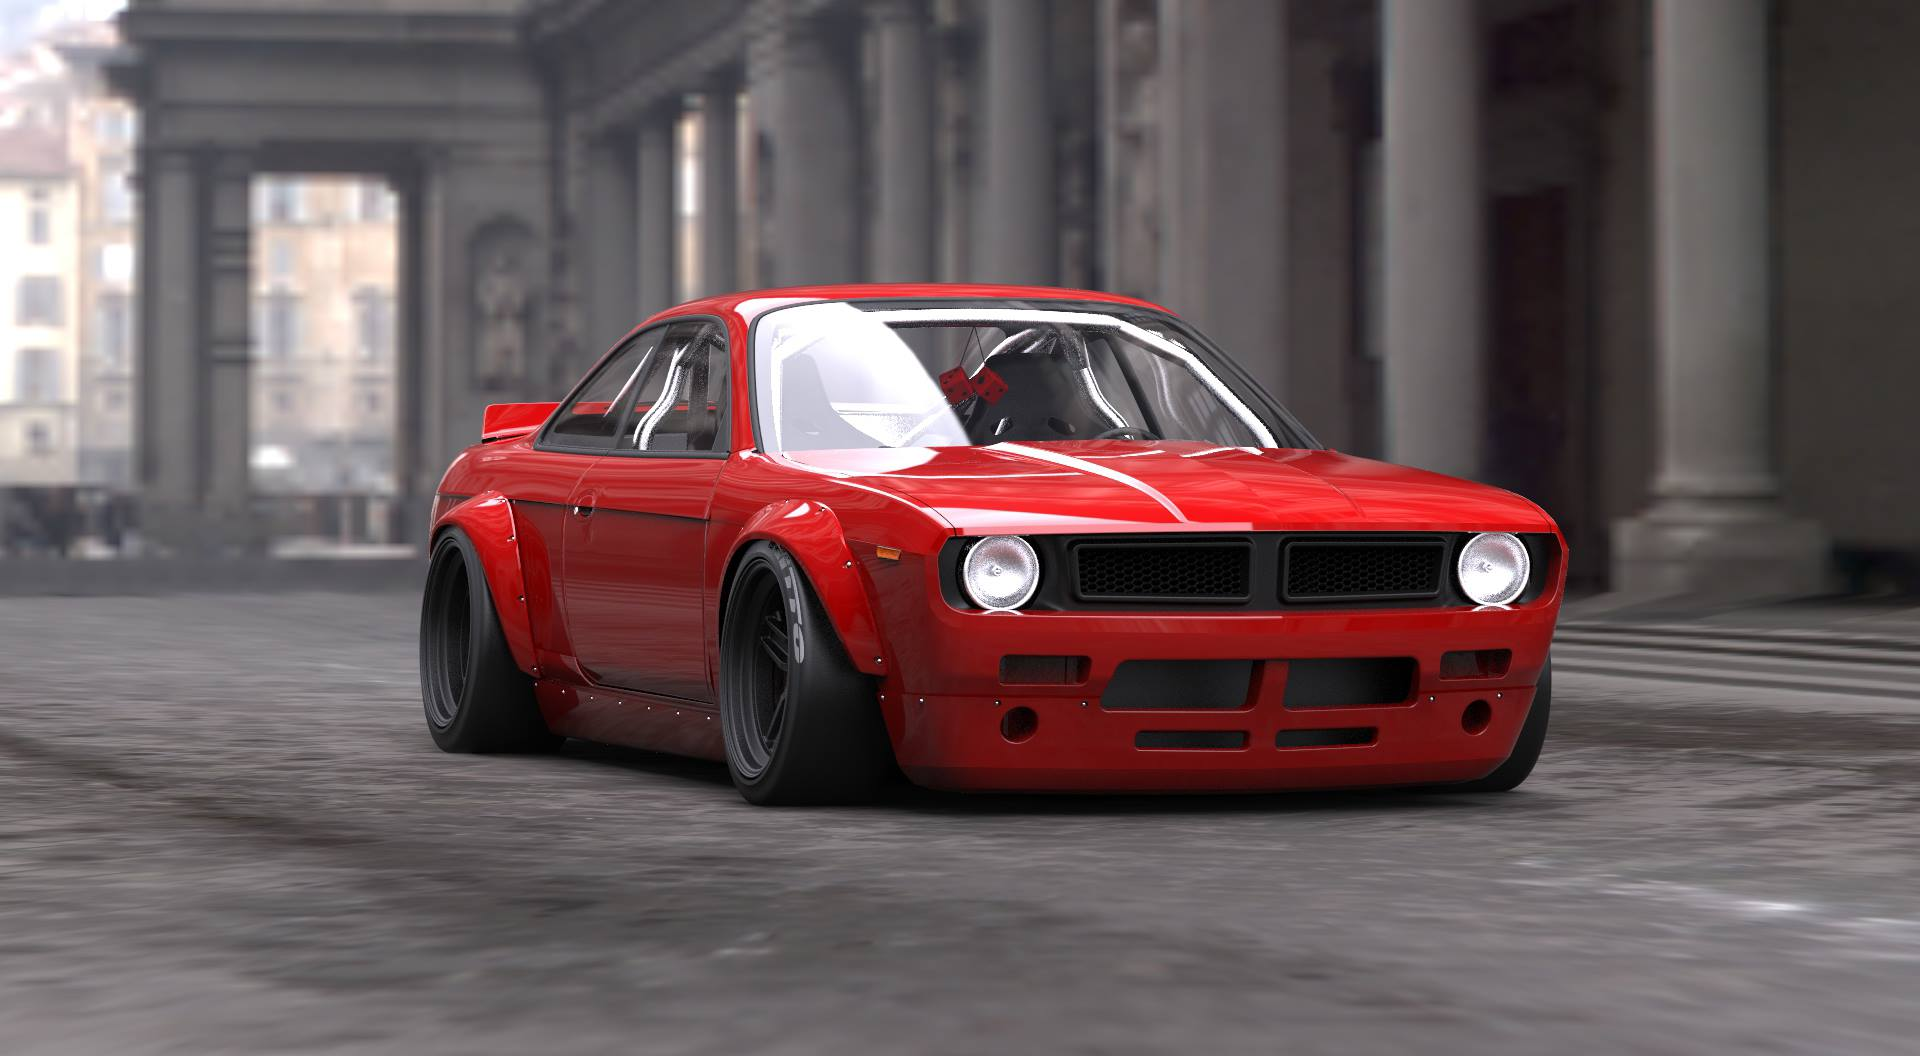 Rocket Bunny Body Kit Turns Your S14 Into A Plymouth Cuda The